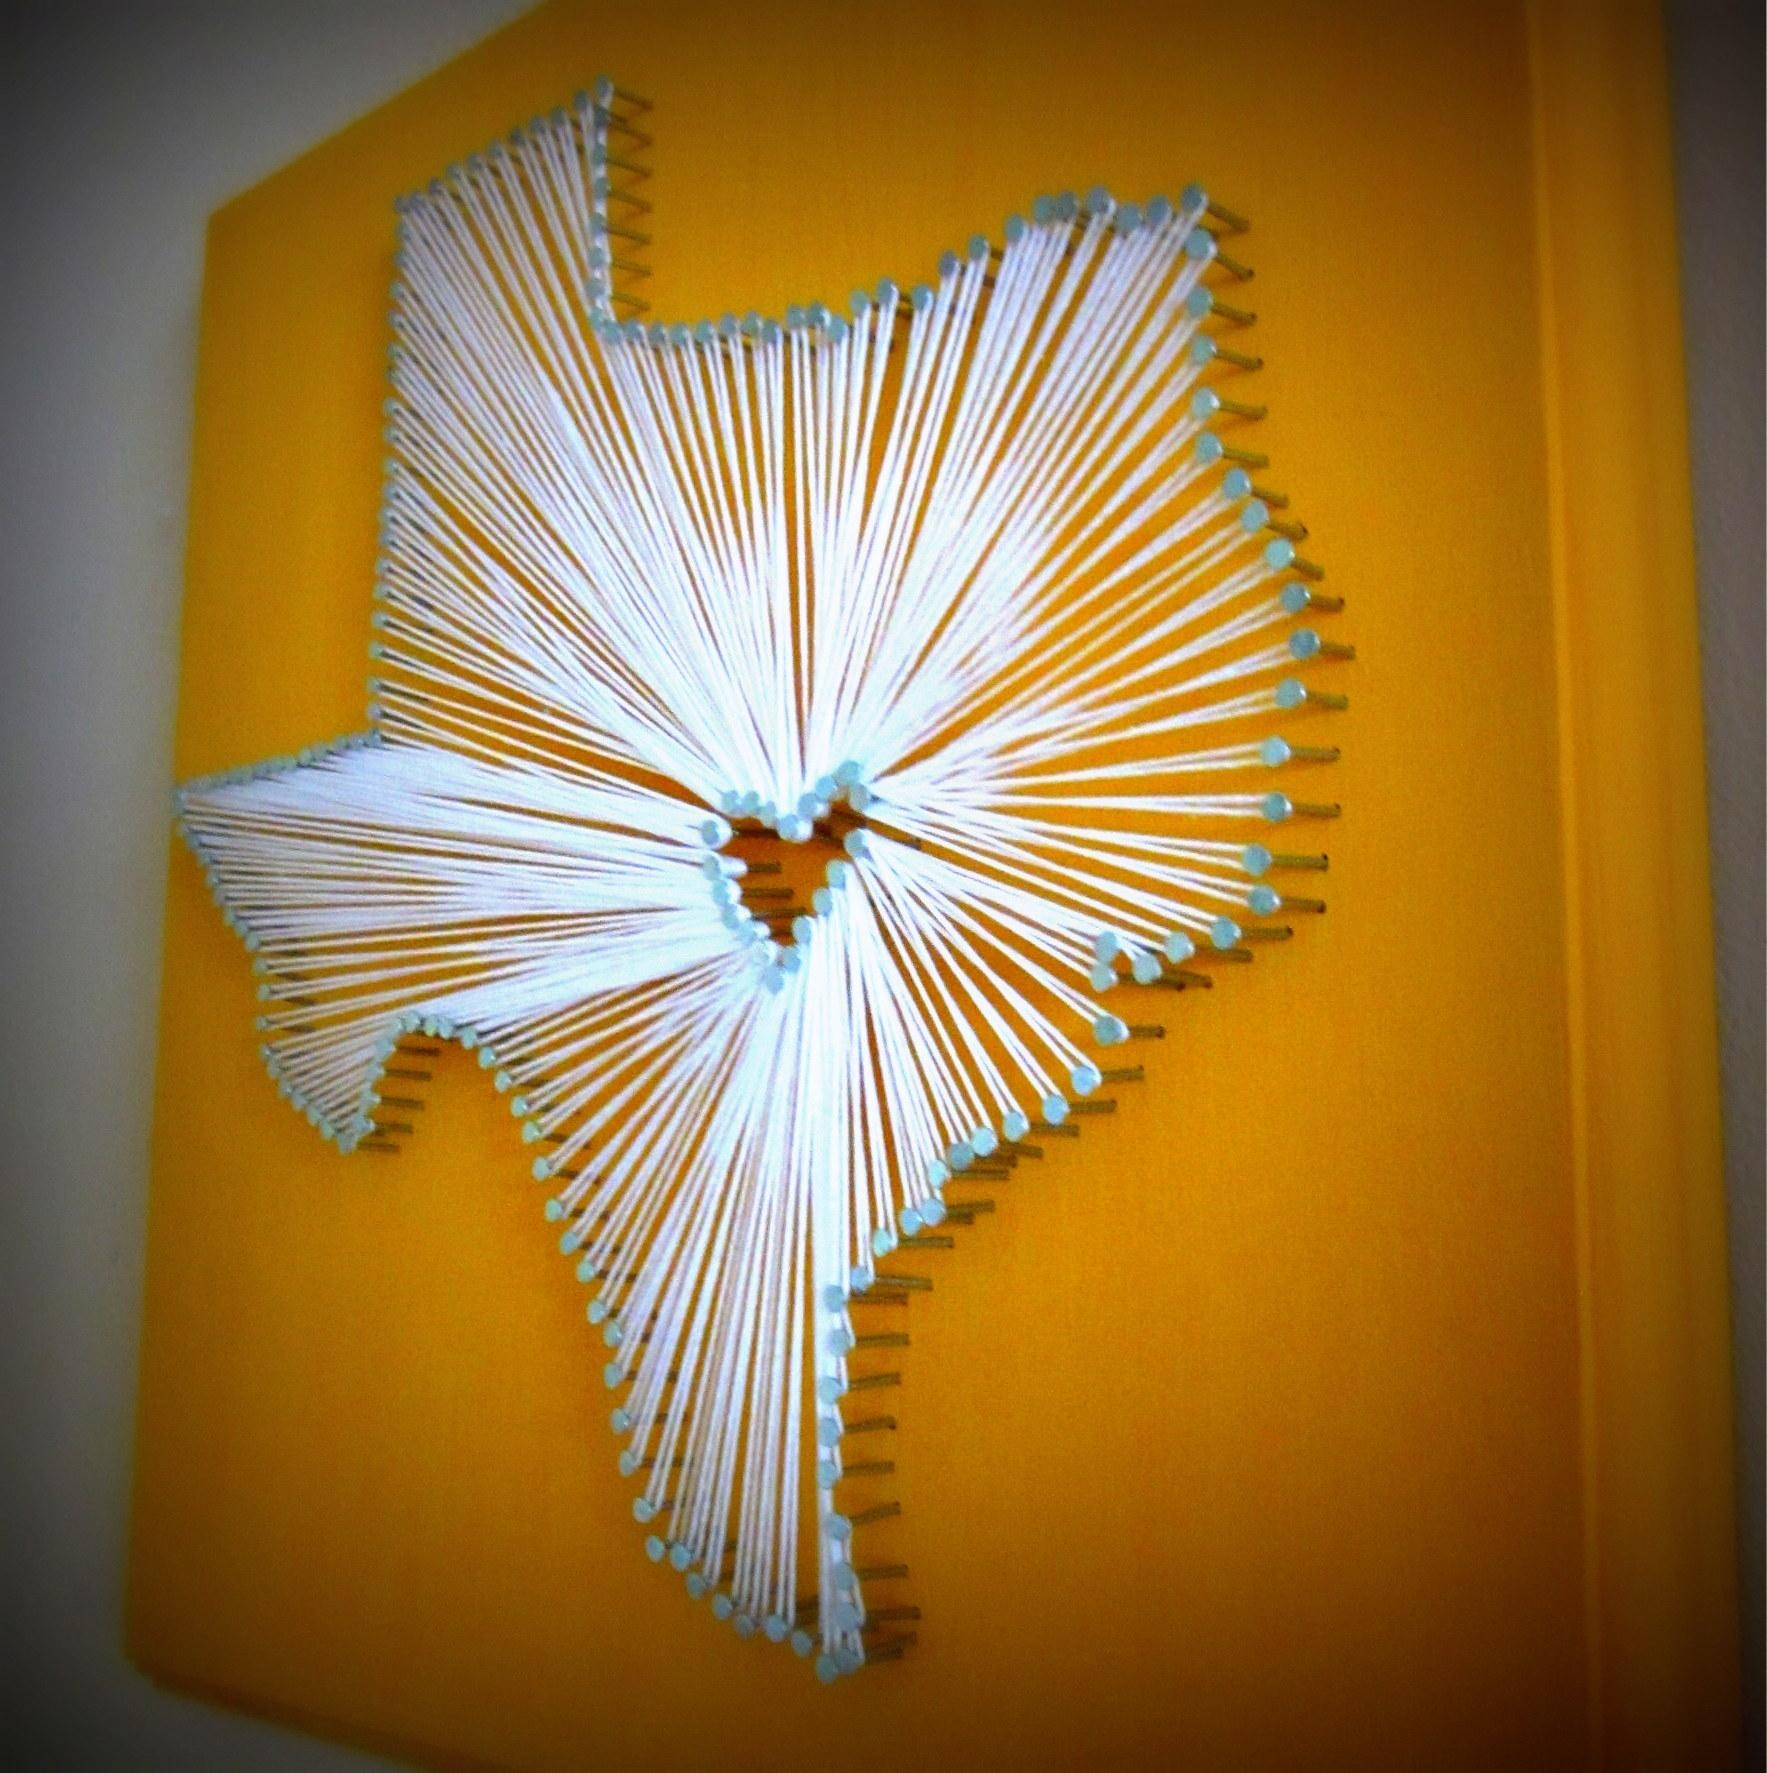 Semi Diy State Nail And String Art | Semi Diy For Nail And Yarn Wall Art (Image 12 of 20)